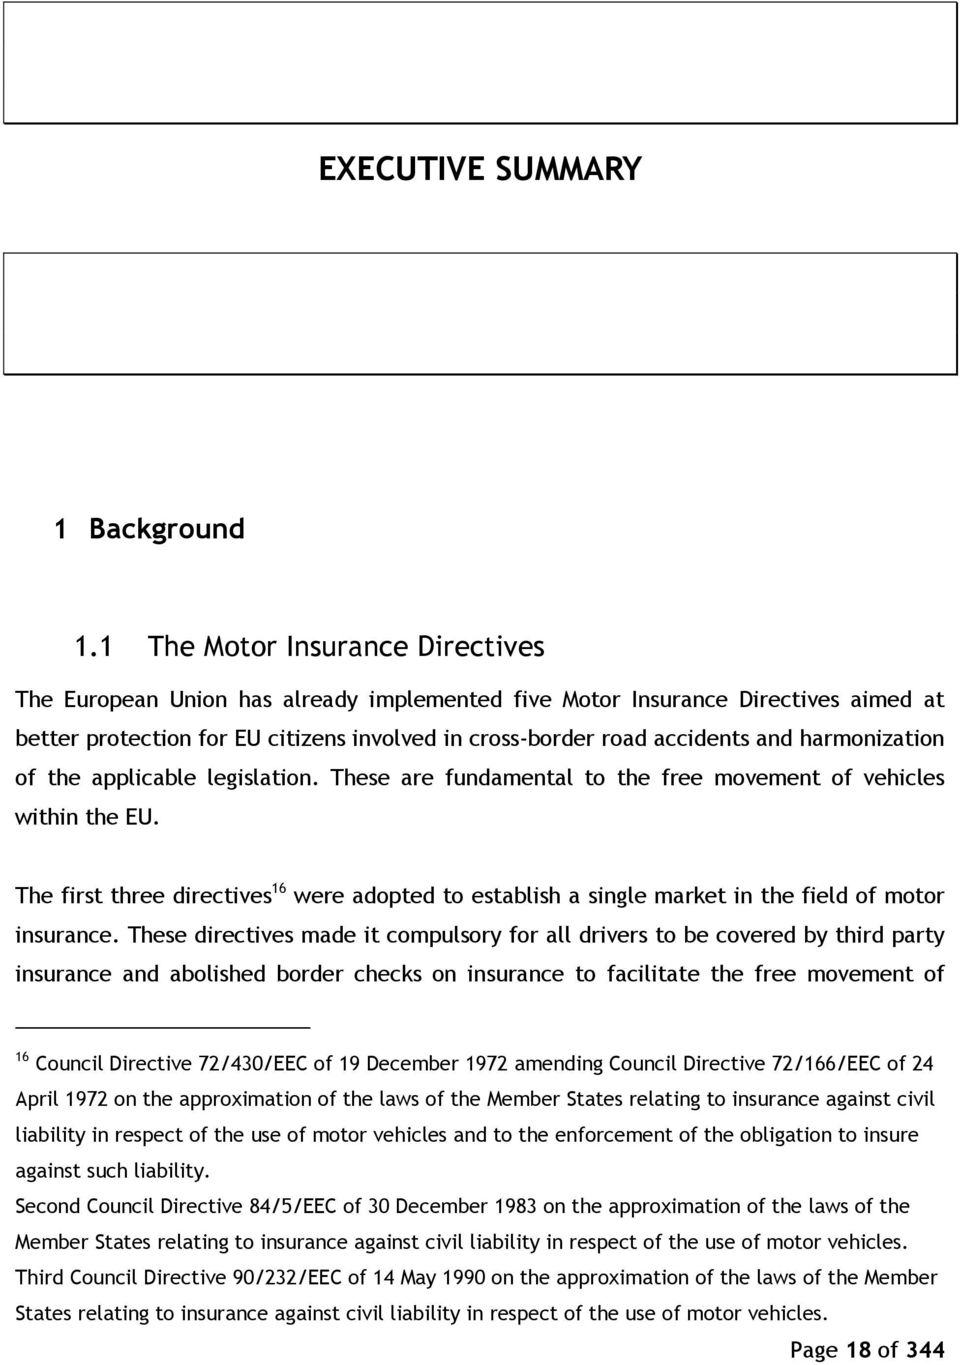 harmonization of the applicable legislation. These are fundamental to the free movement of vehicles within the EU.